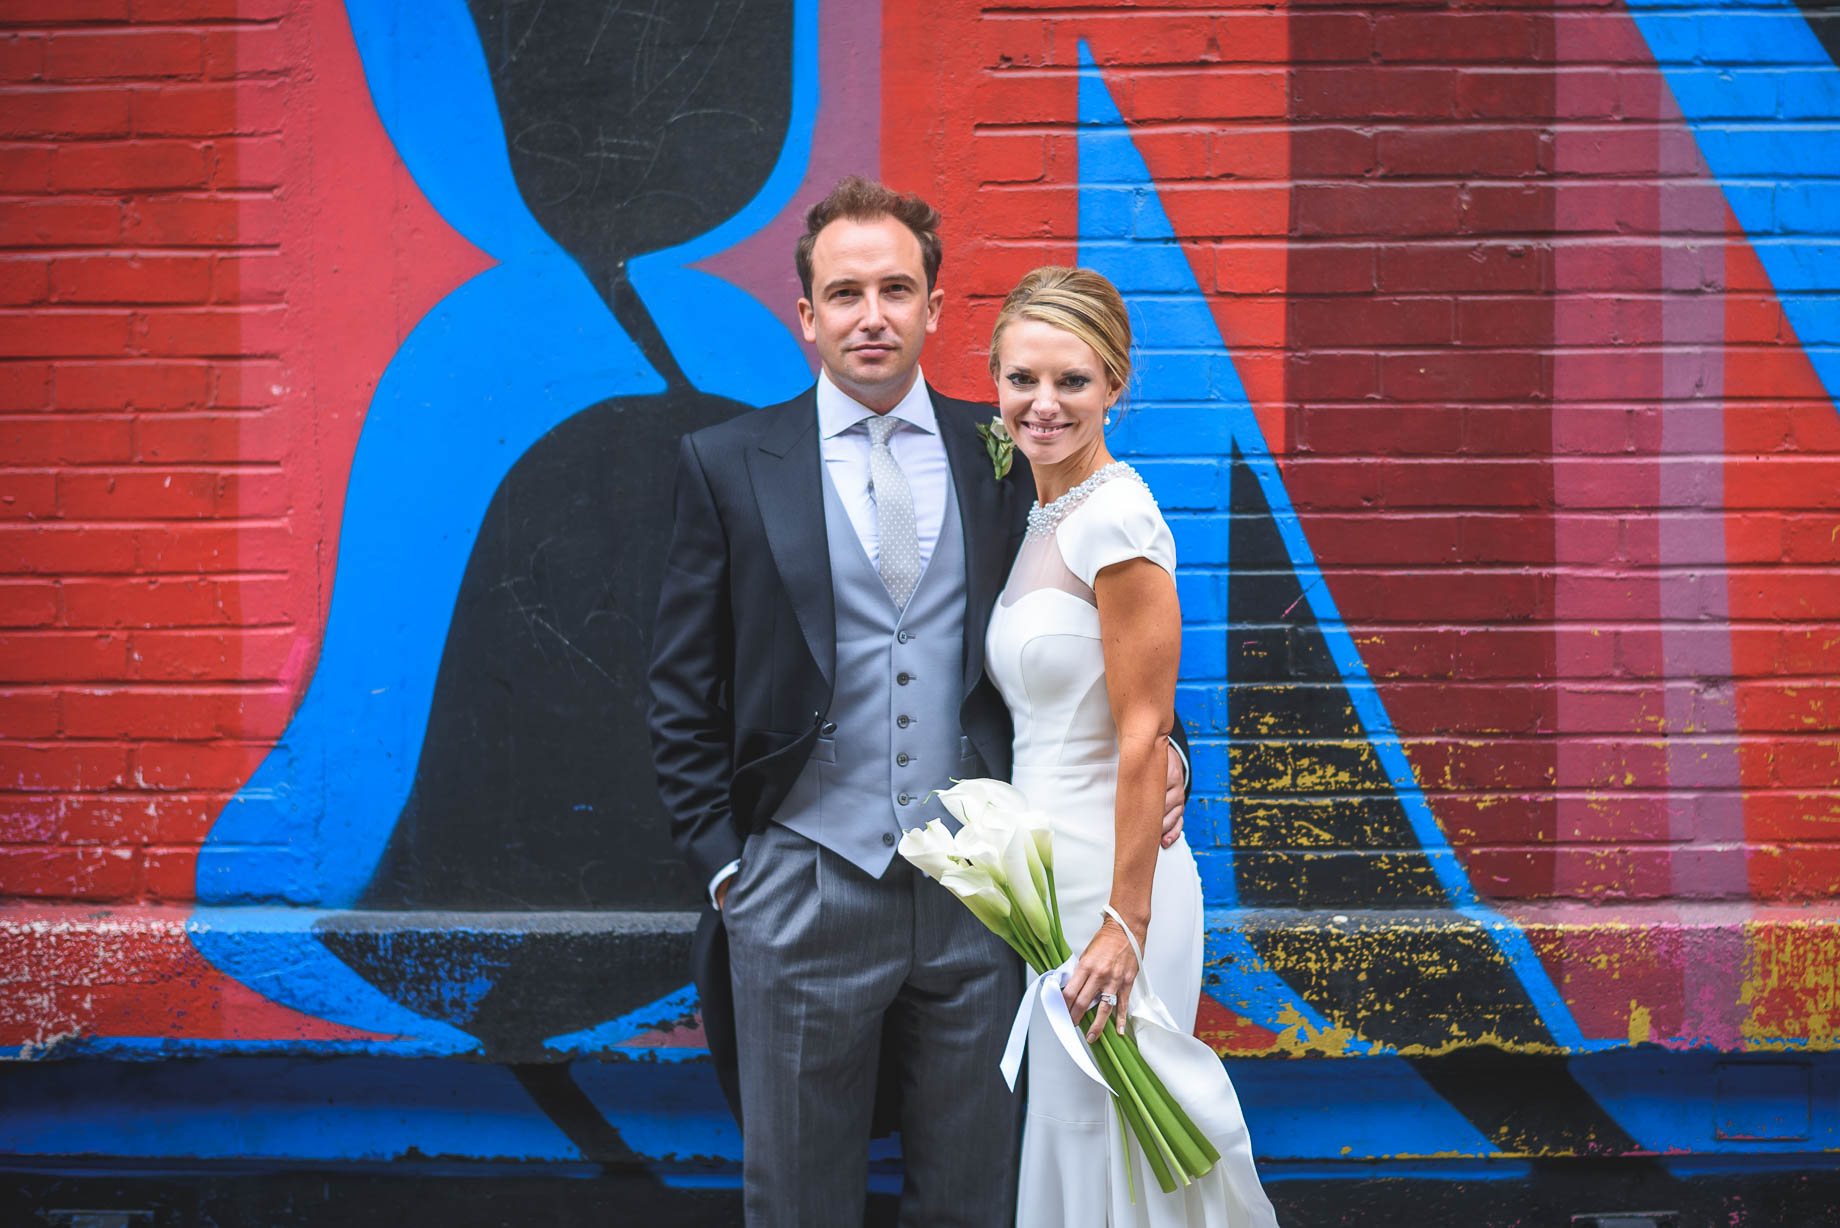 Shoreditch wedding photography - Guy Collier - Kat and Henry (109 of 200)